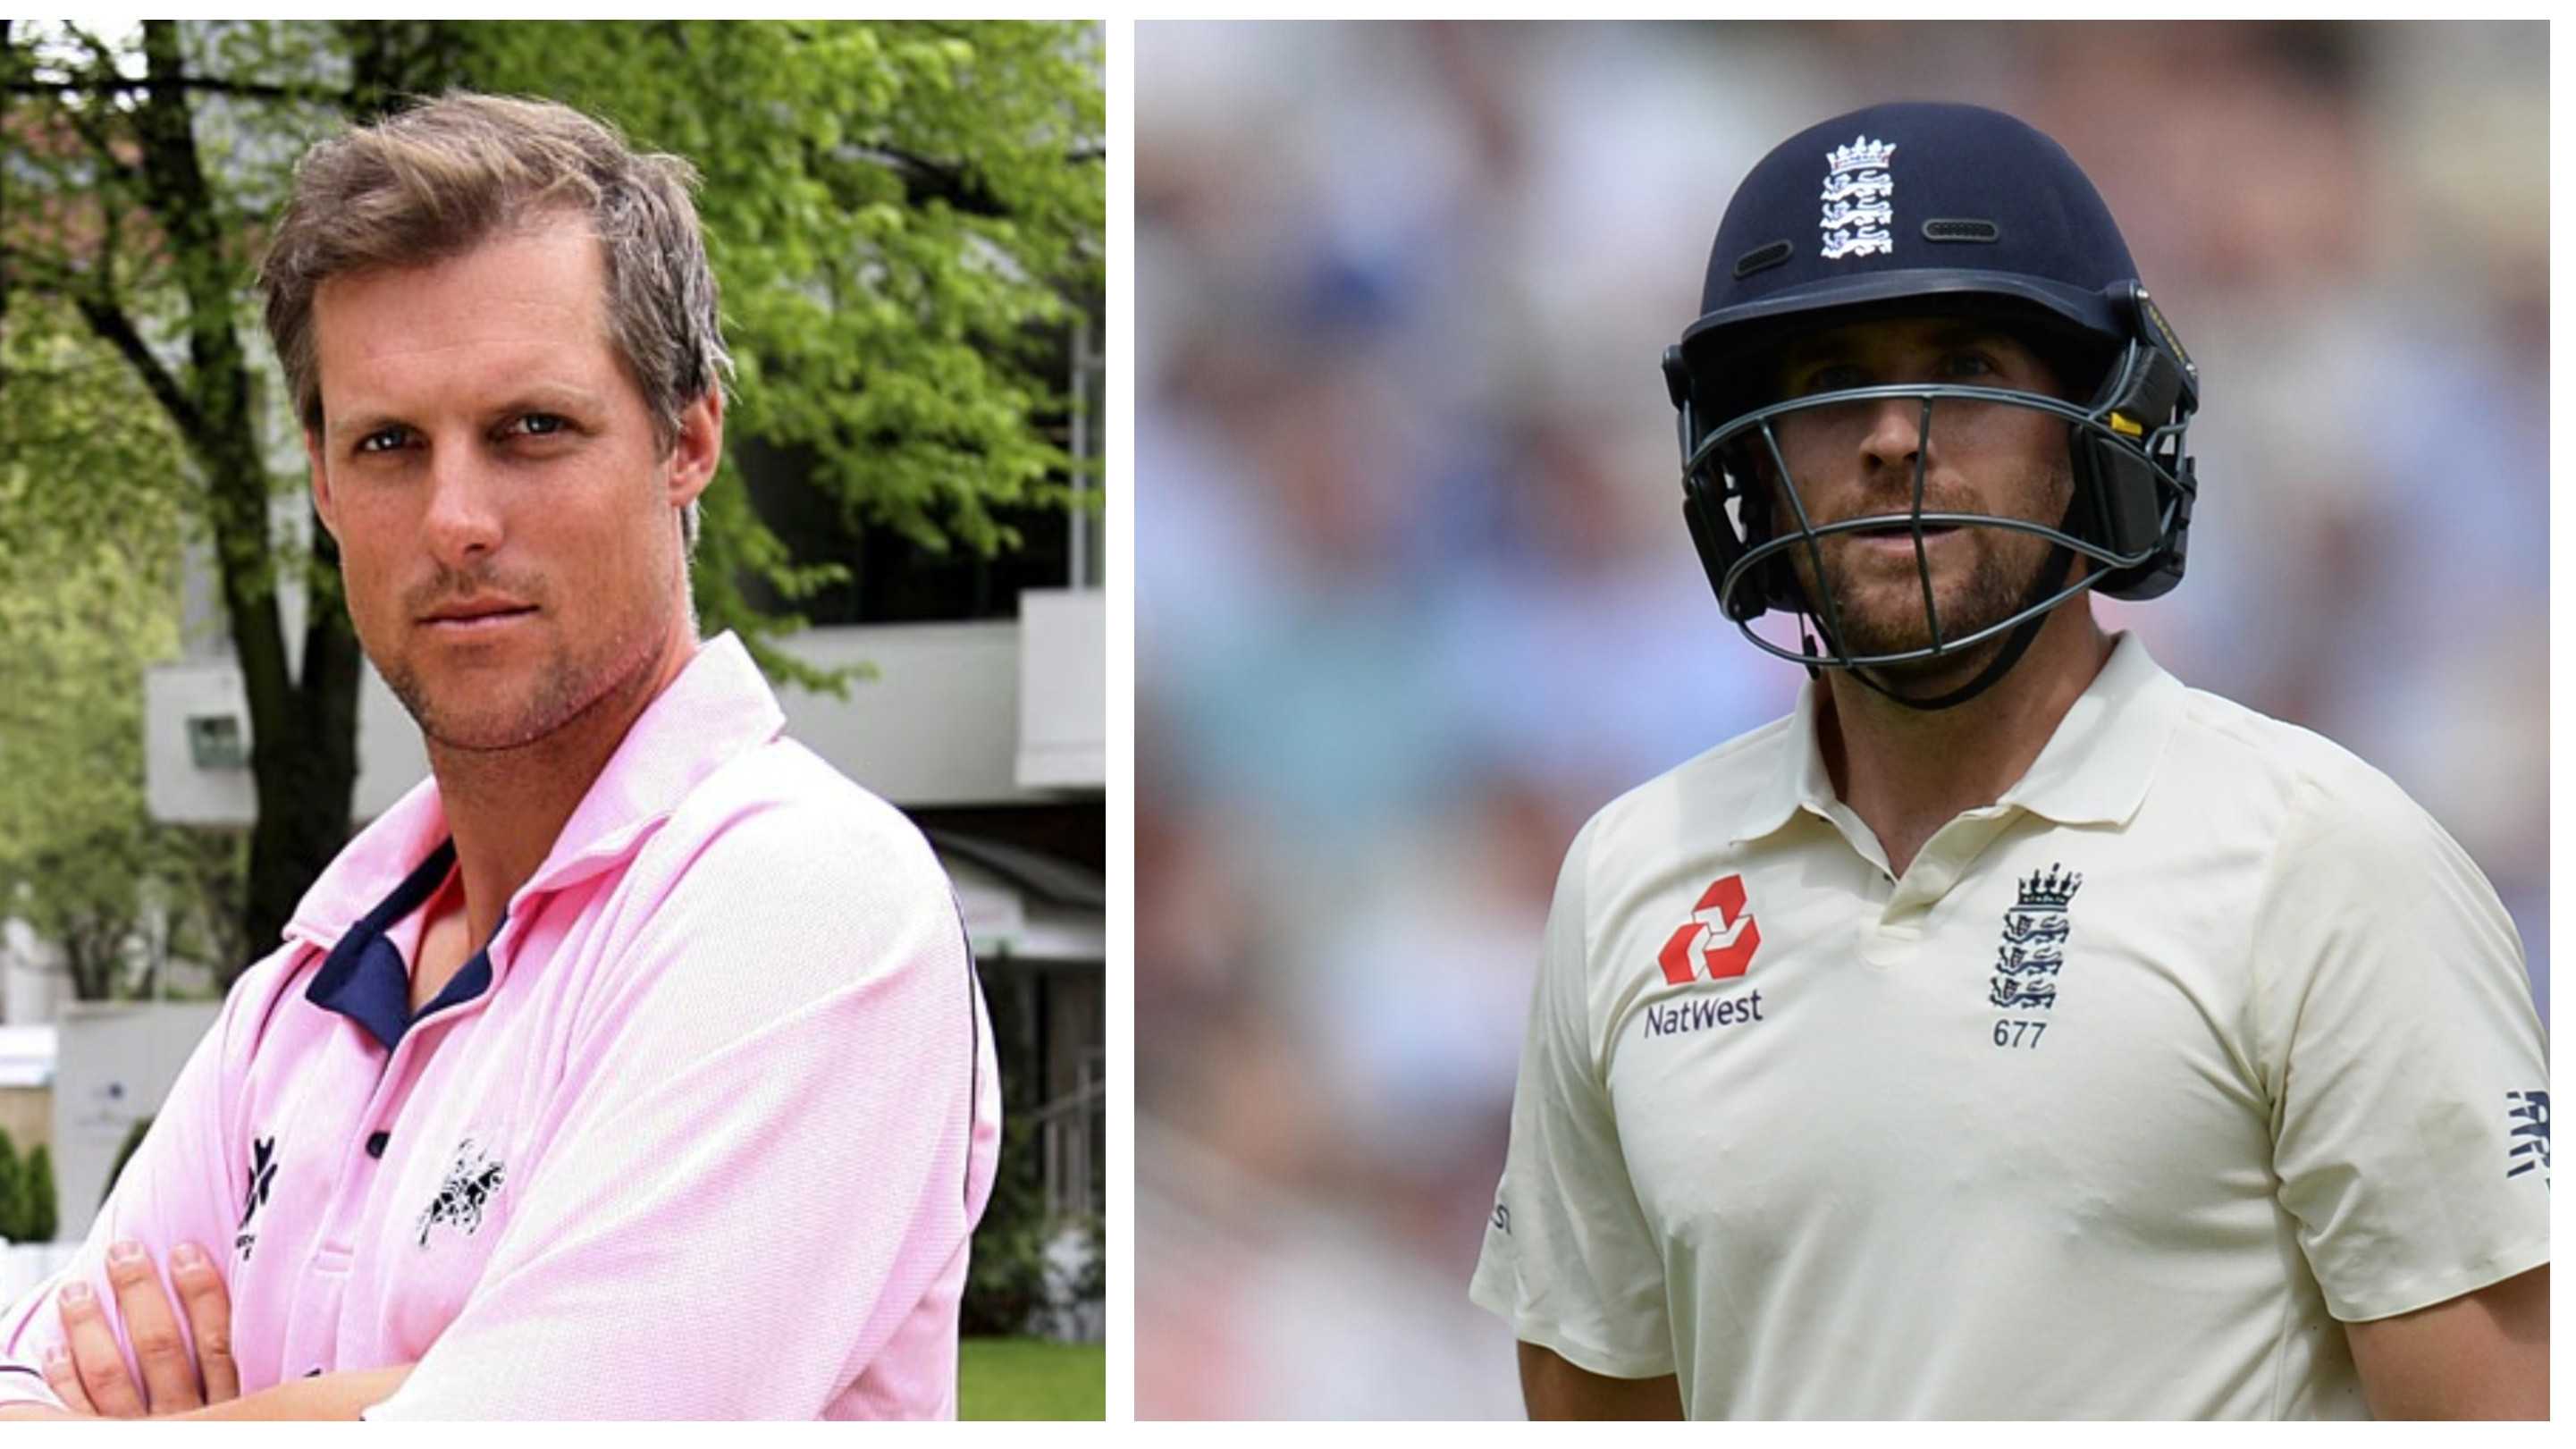 ENG vs IND 2018: ECB National selector Ed Smith defends axing Dawid Malan